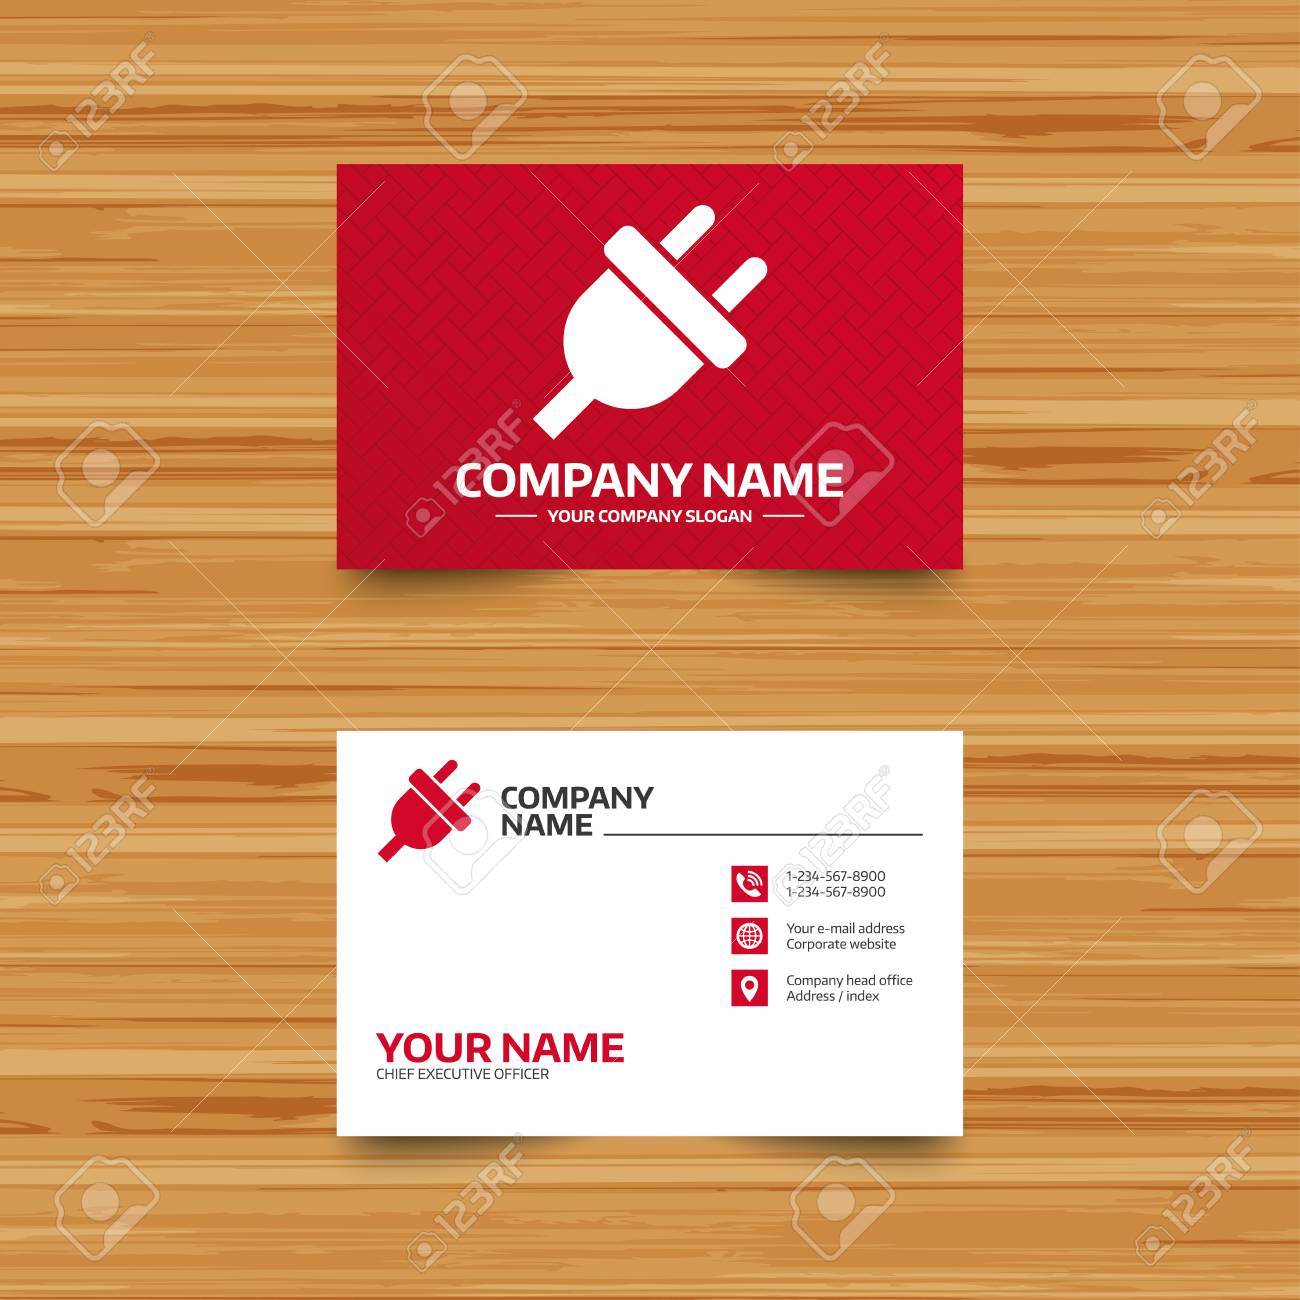 Business card template electric plug sign icon power energy business card template electric plug sign icon power energy symbol phone globe colourmoves